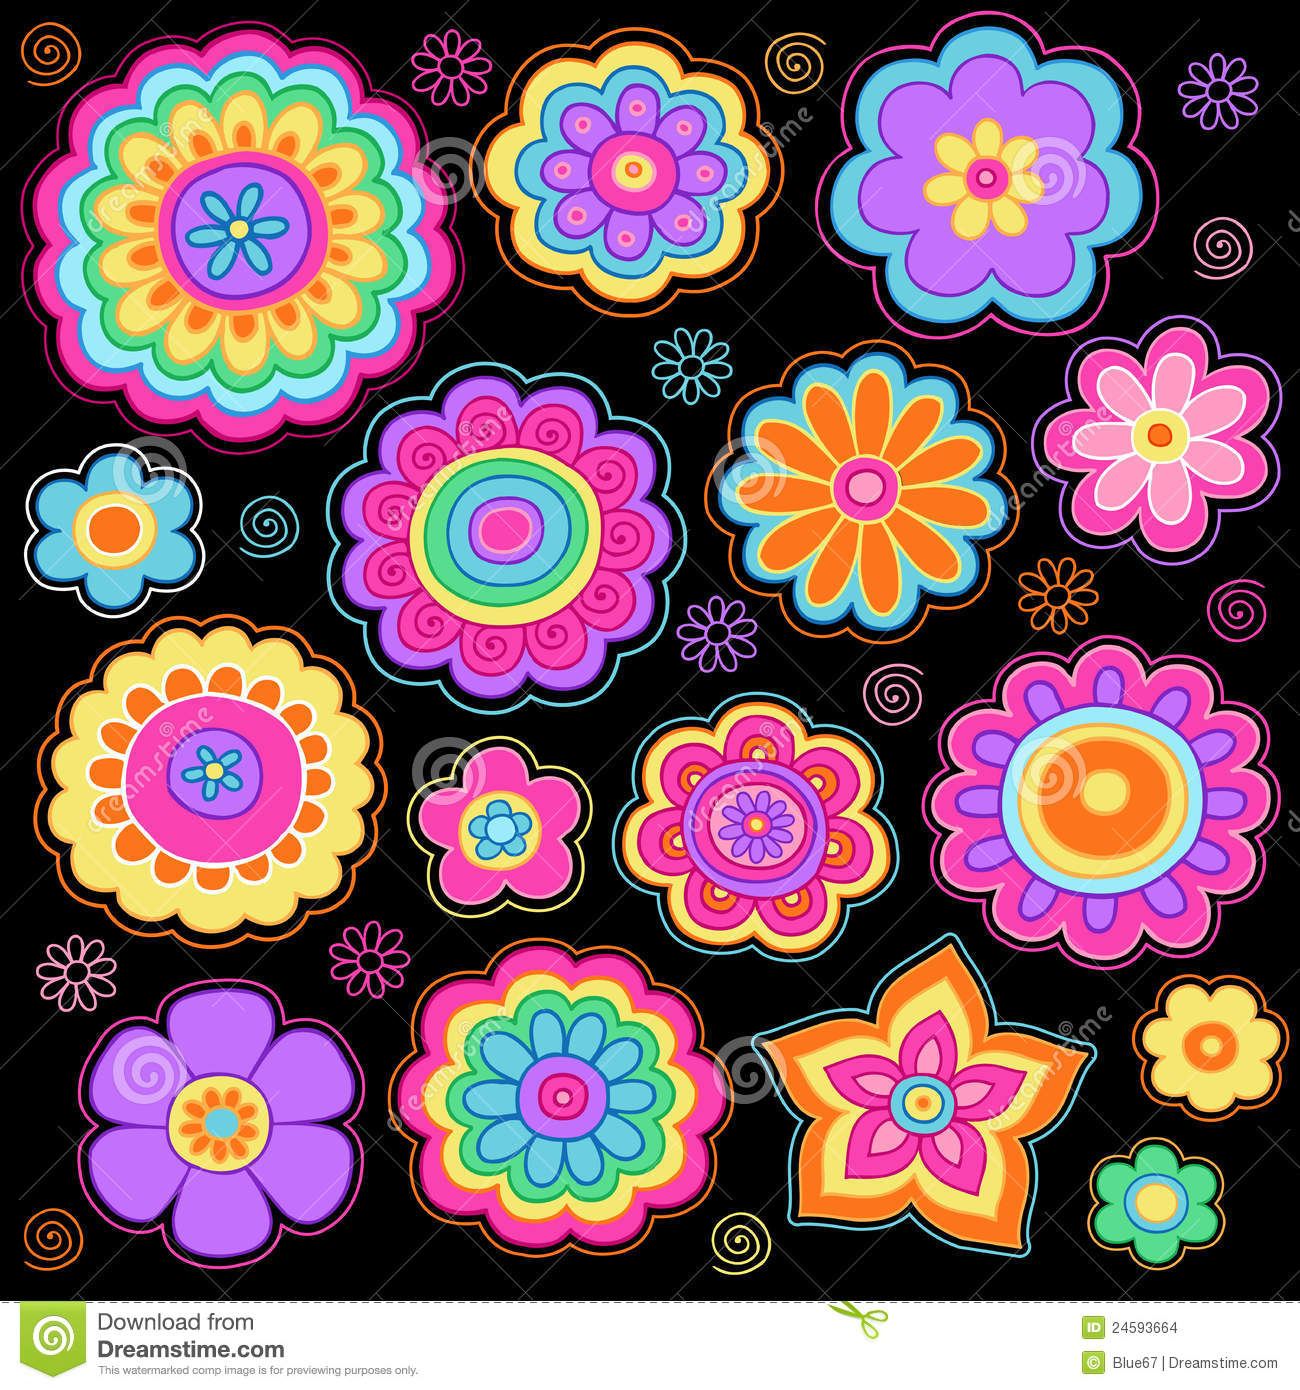 Cute Girly Girl Wallpapers Groovy Flowers Psychedelic Doodles Vector Set Stock